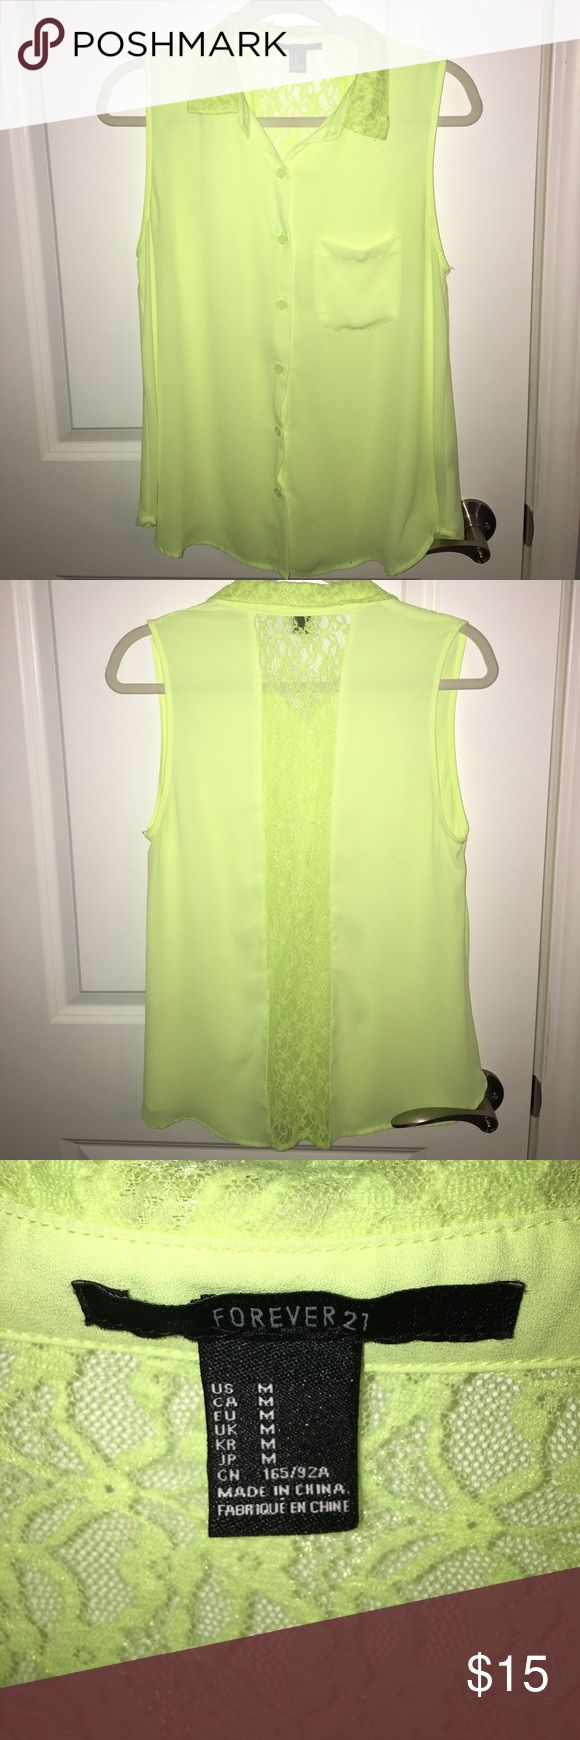 F21 Lime Green and Lace Button Down Blouse Gently used Women's Forever 21 Button down. Size M. Forever 21 Tops Button Down Shirts